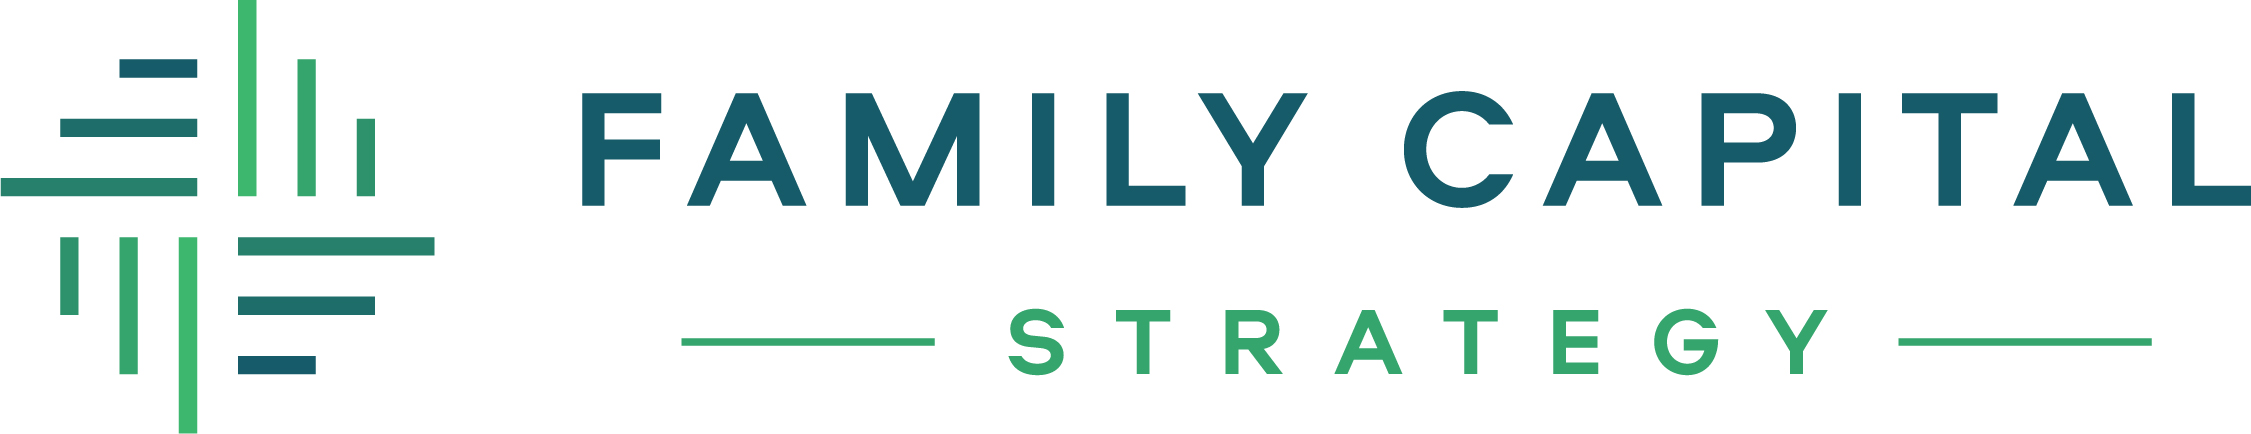 Family Capital Strategy